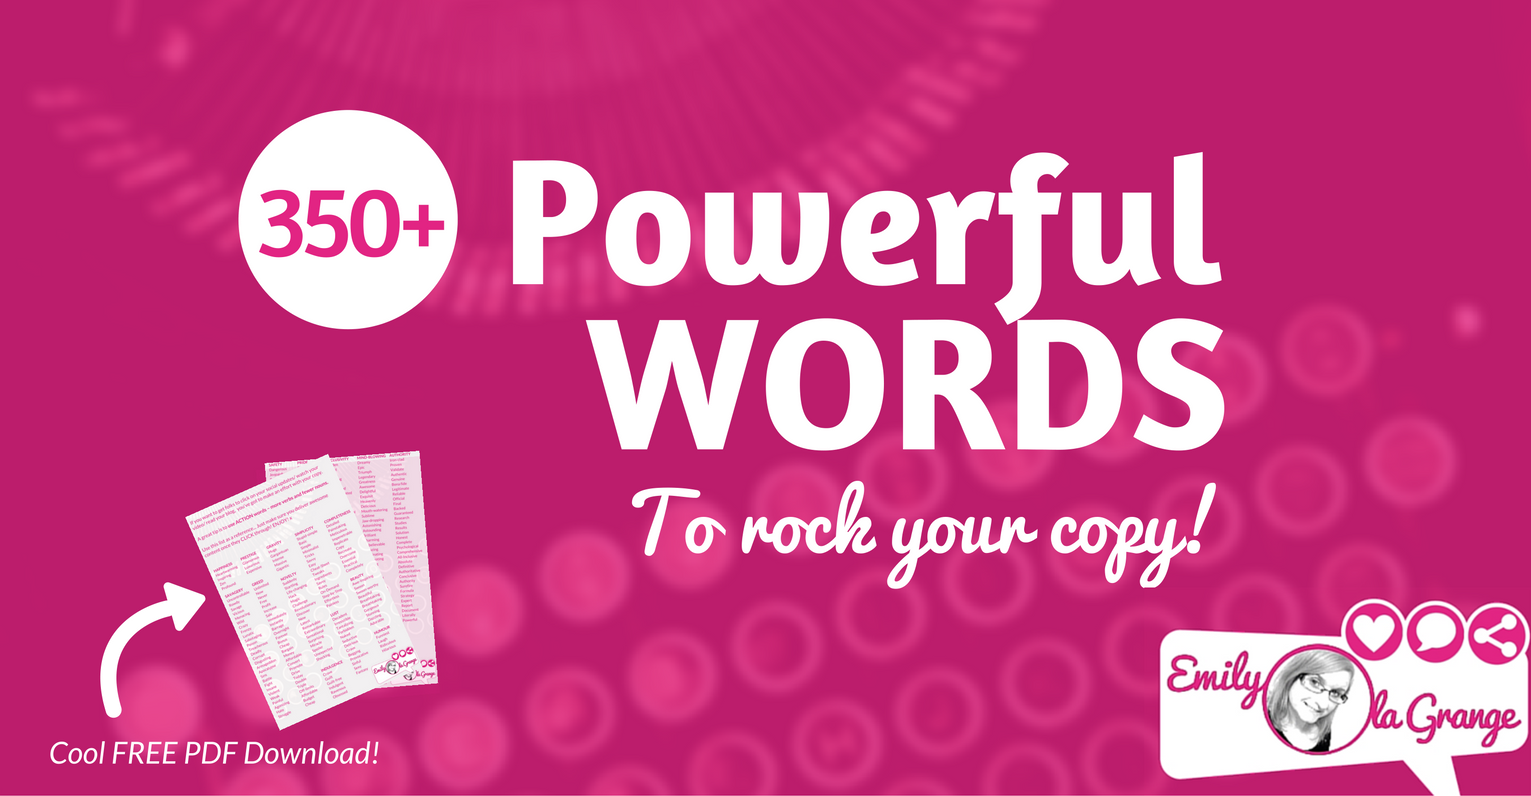 [FREE PDF] 350+ Powerful Words to ROCK your copy!